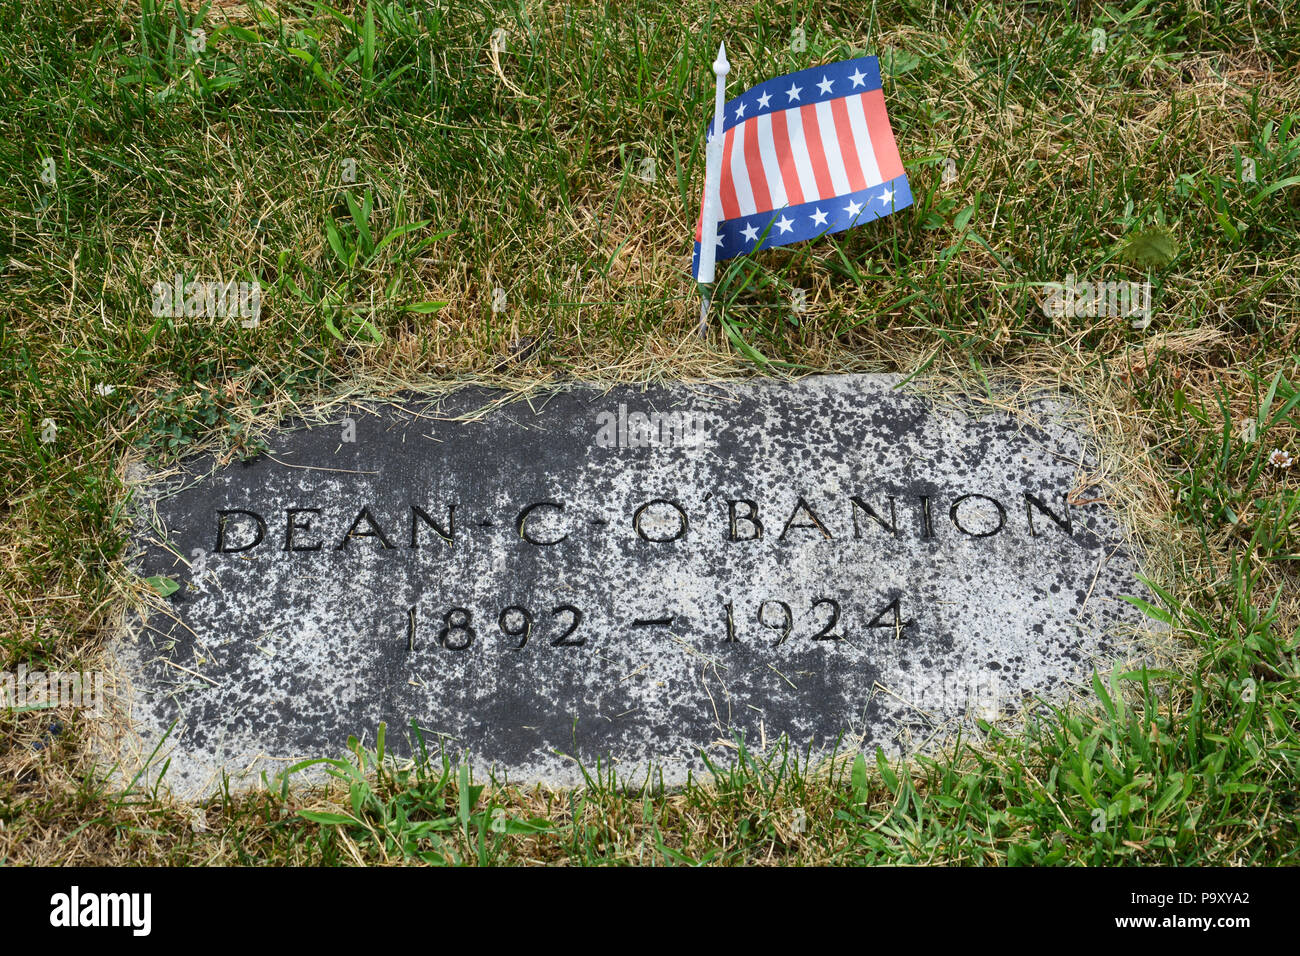 Headstone of 1920s Chicago gangster Dean (AKA Dion) O'Banion at Mt Carmel Cemetery in Hillside. O'Banion was gunned down in his flower shop in 1924. - Stock Image